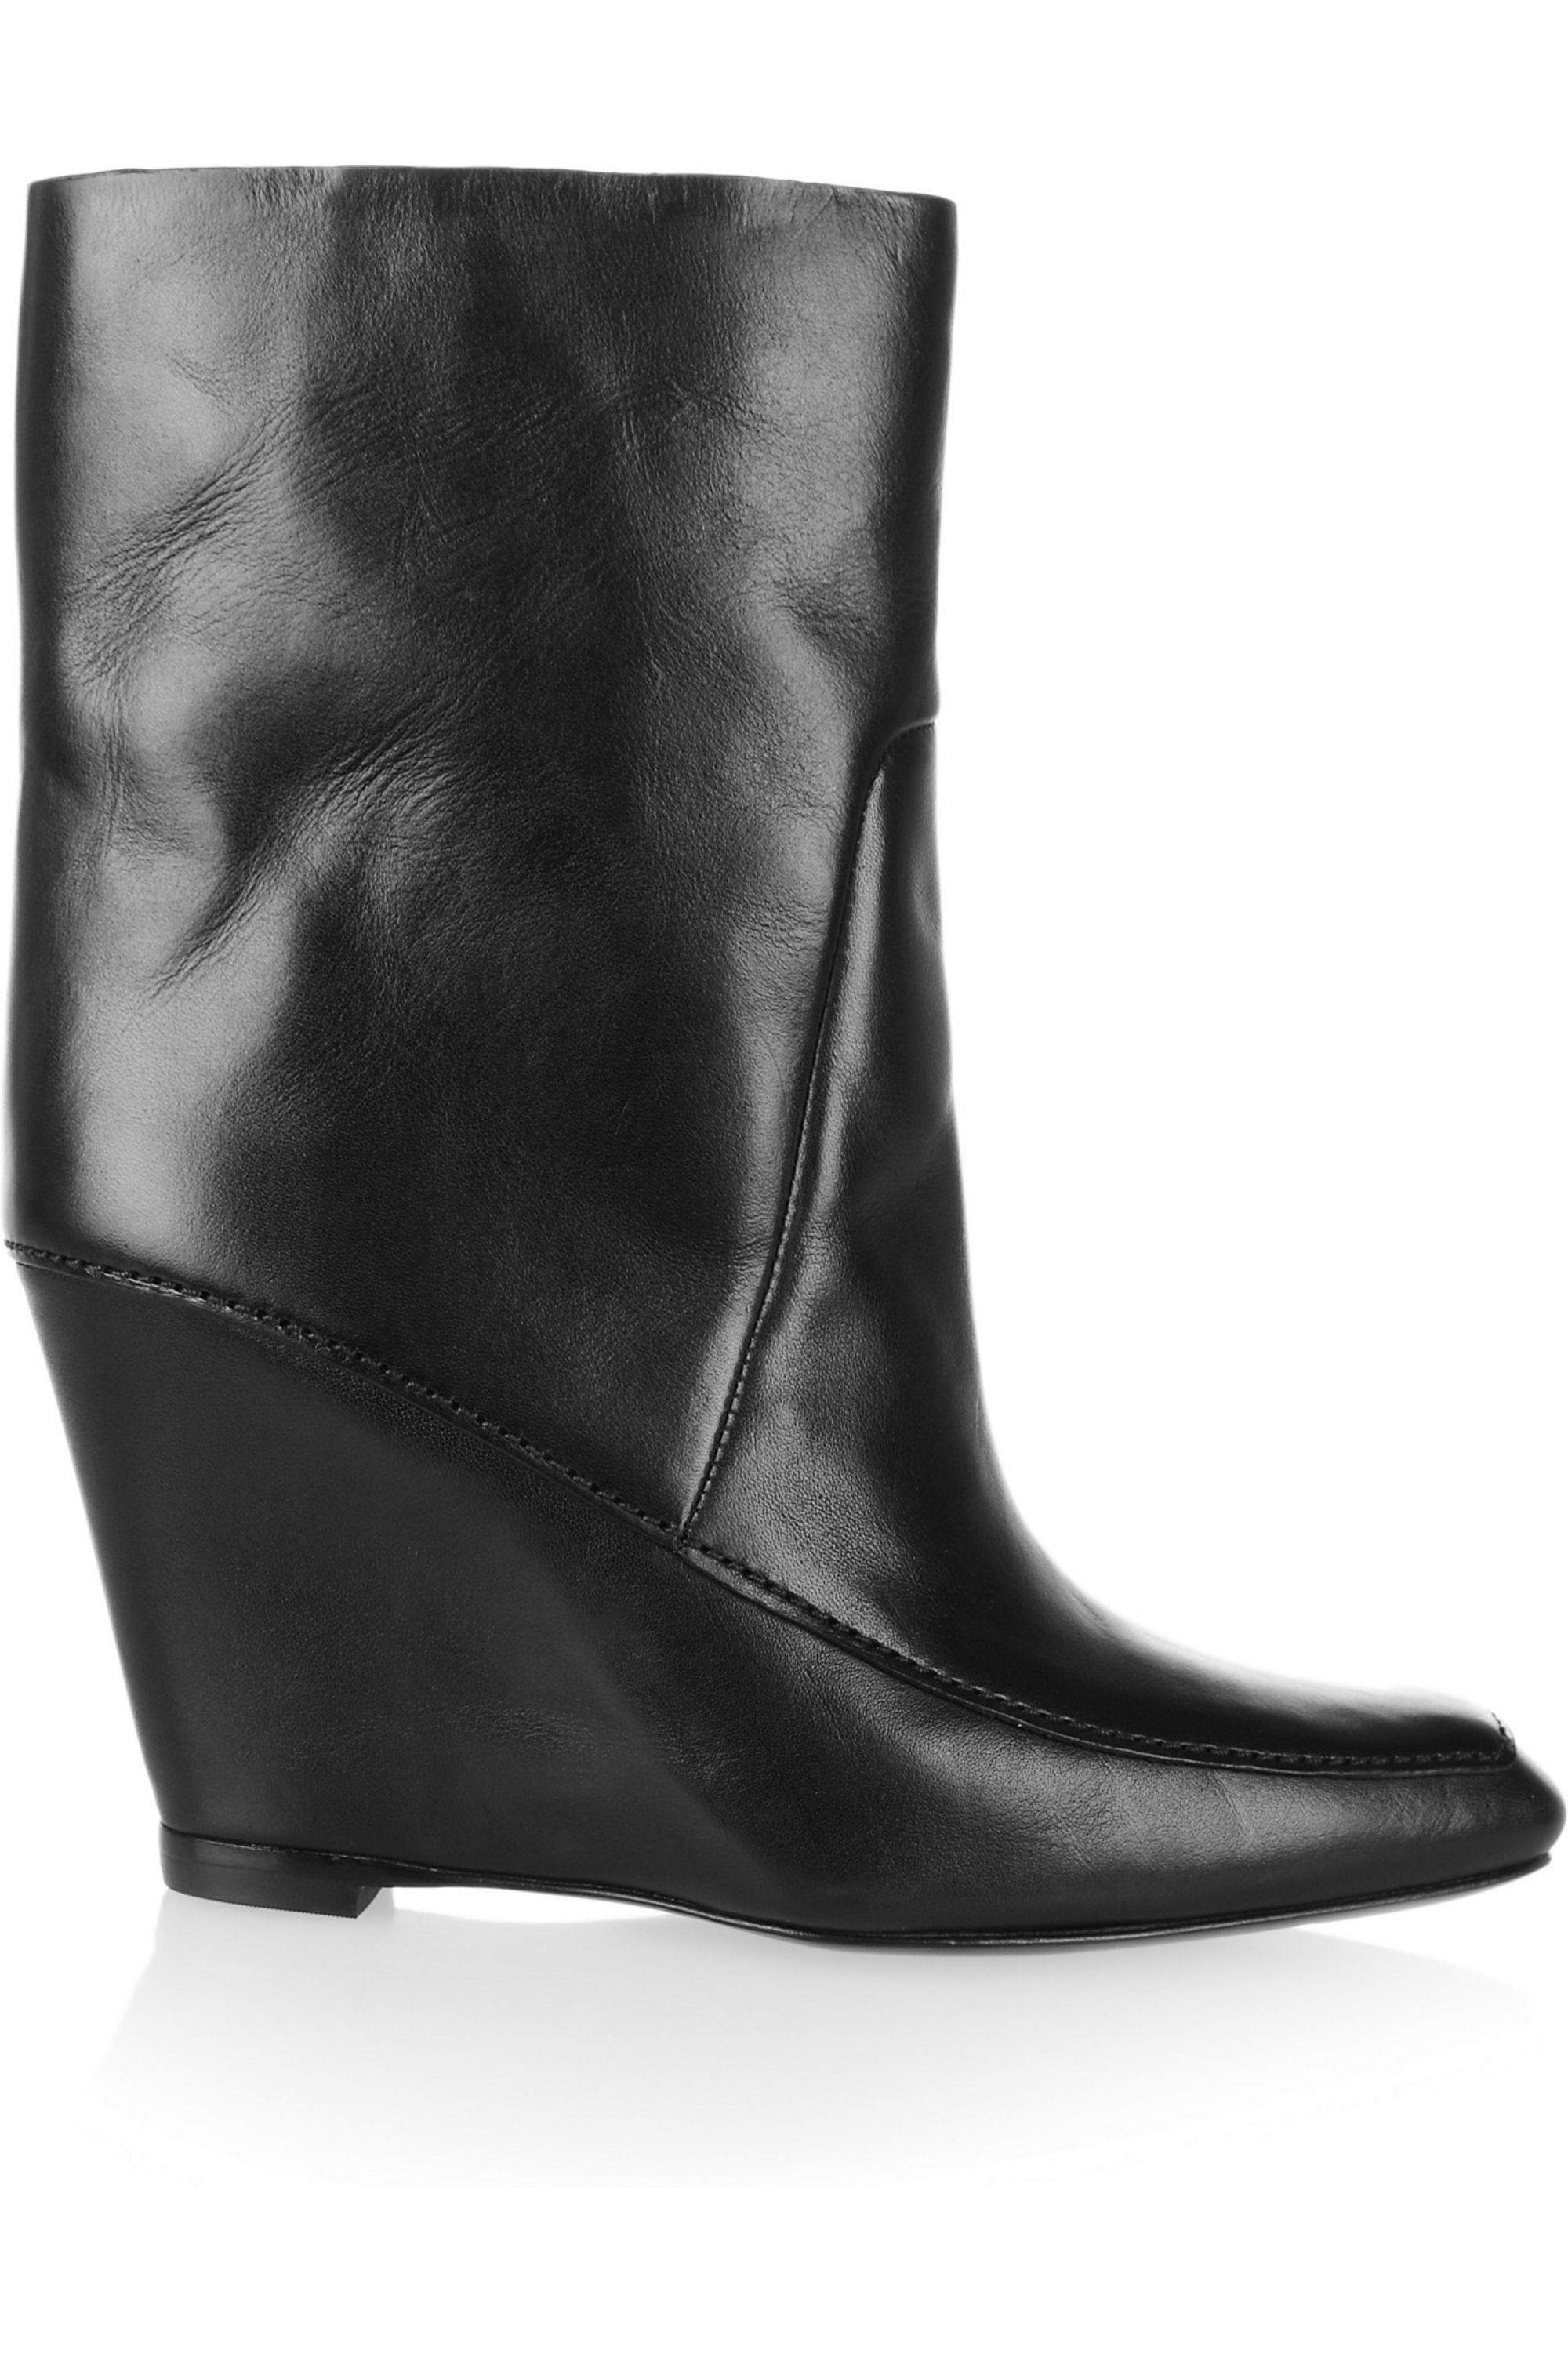 Alexander Wang Leather wedge ankle boots